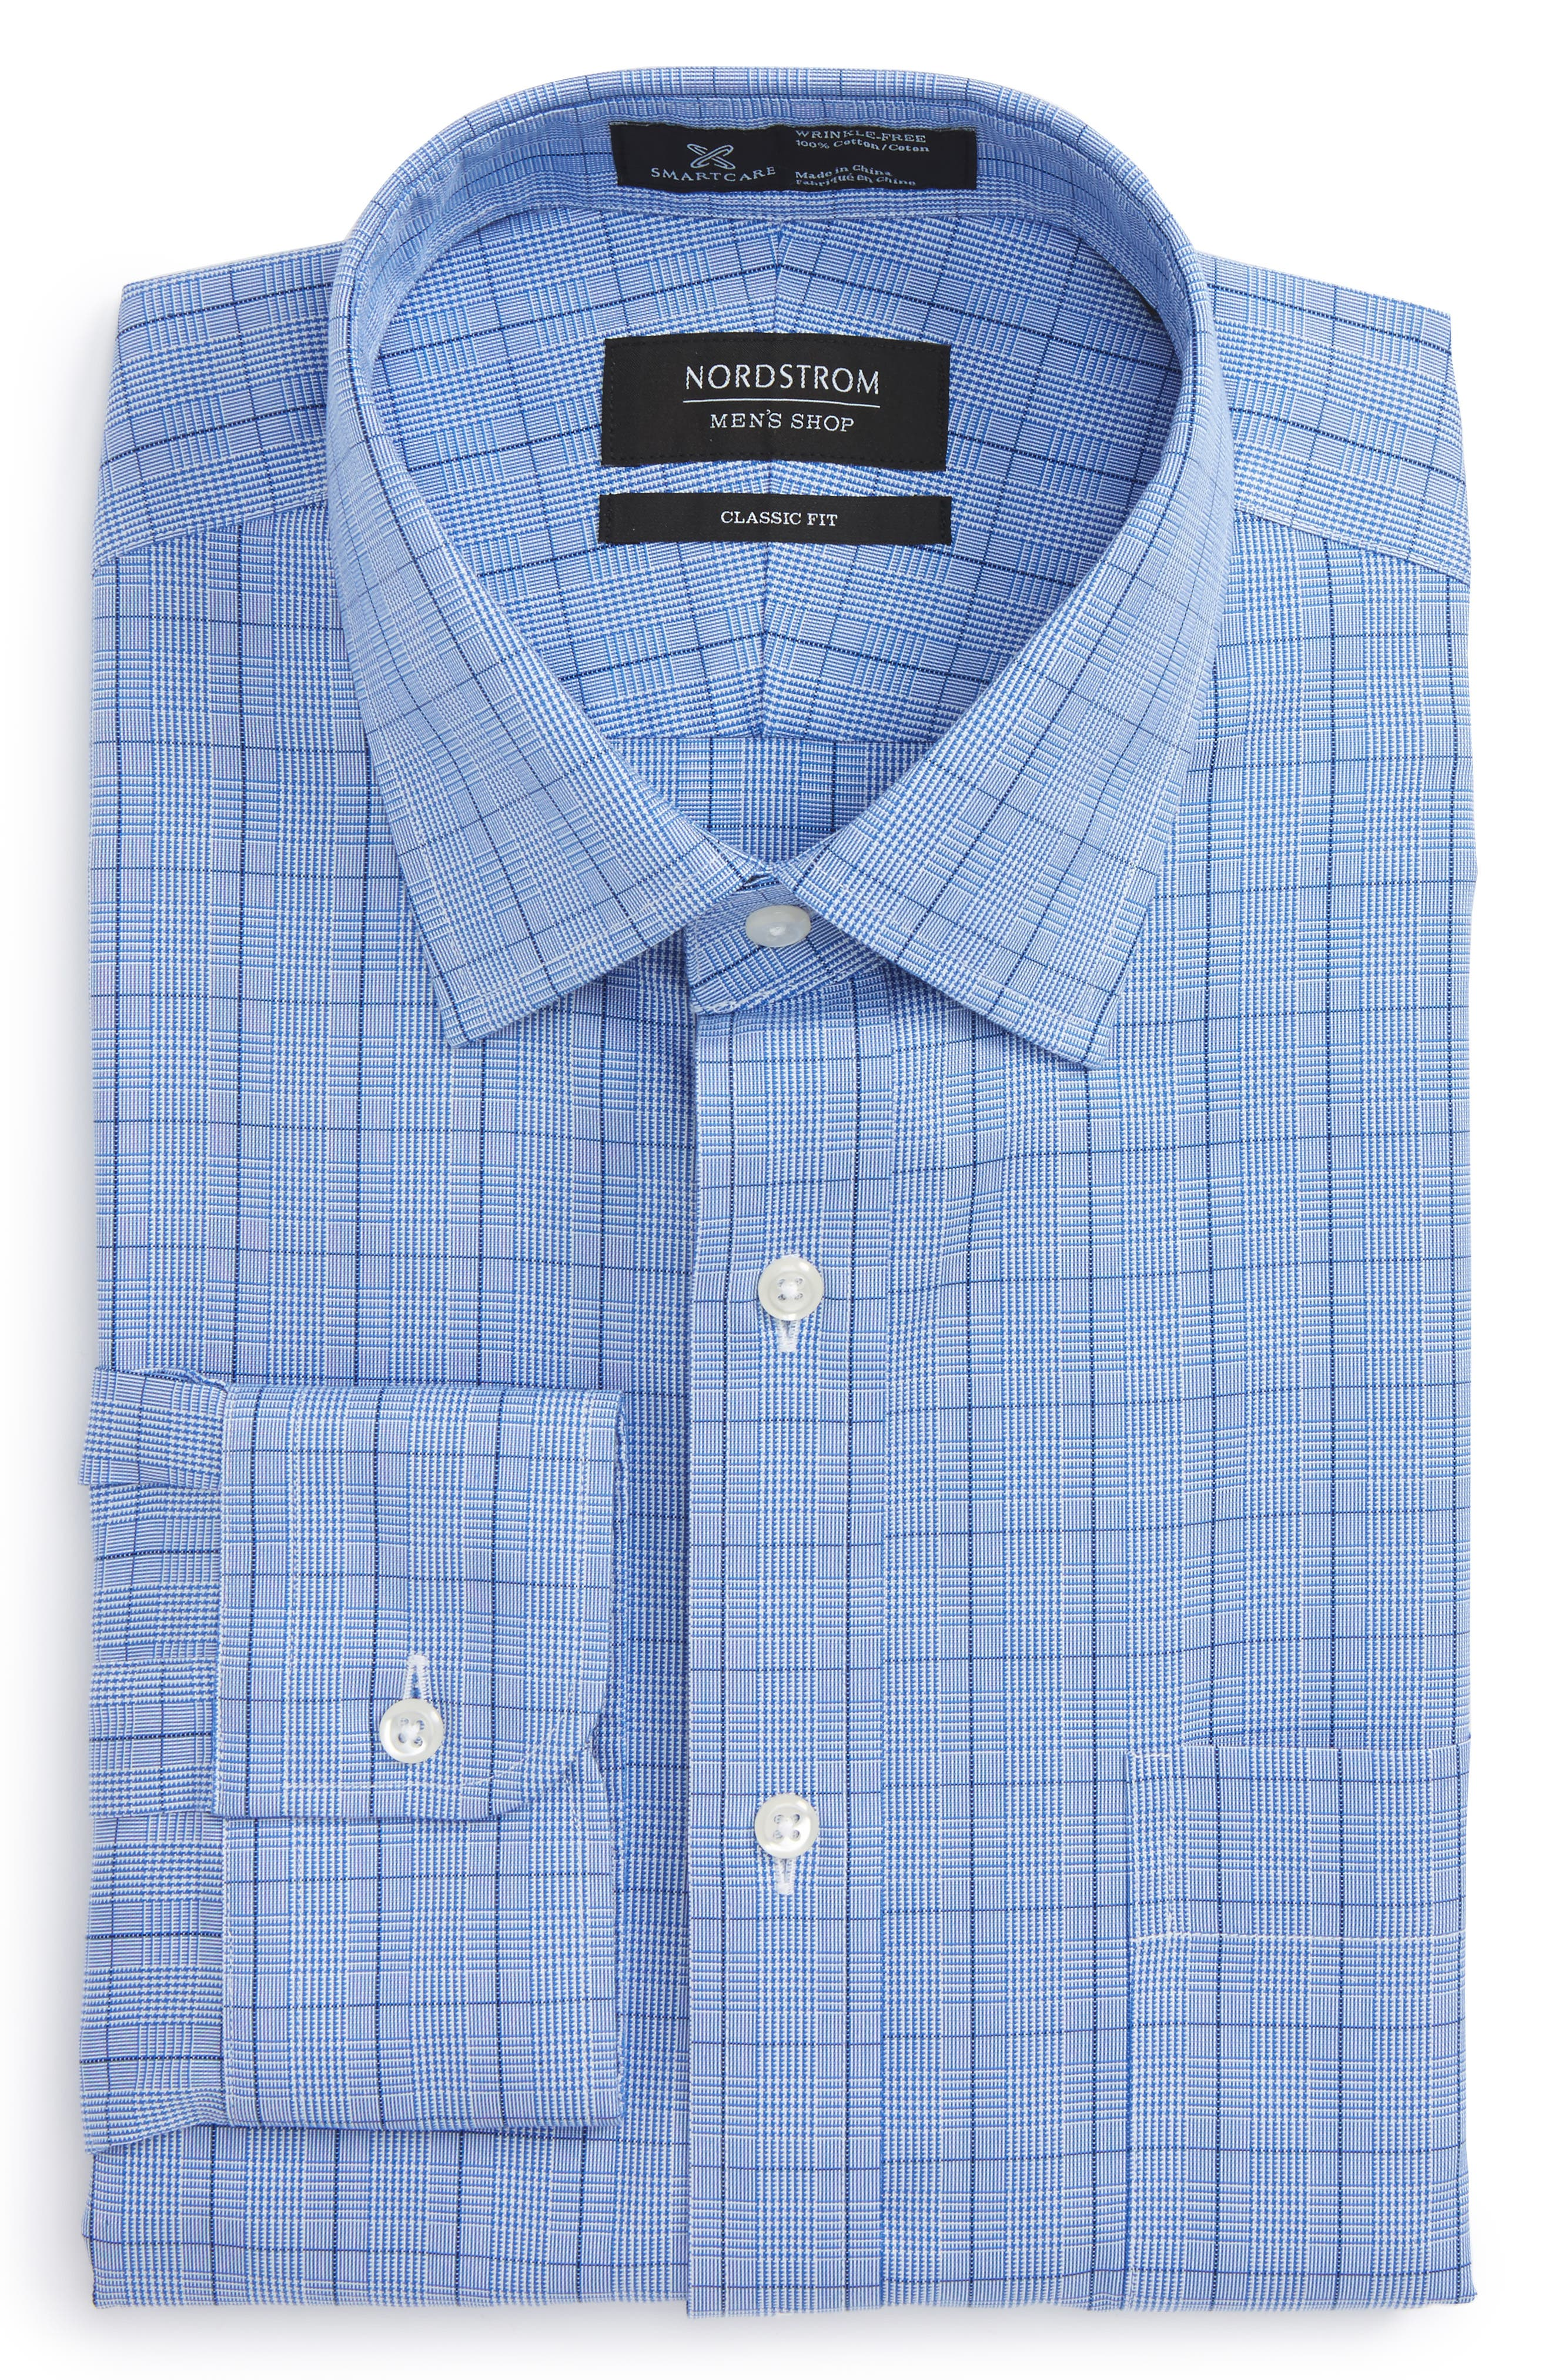 Main Image - Nordstrom Men's Shop Smartcare™ Classic Fit Windowpane Dress Shirt